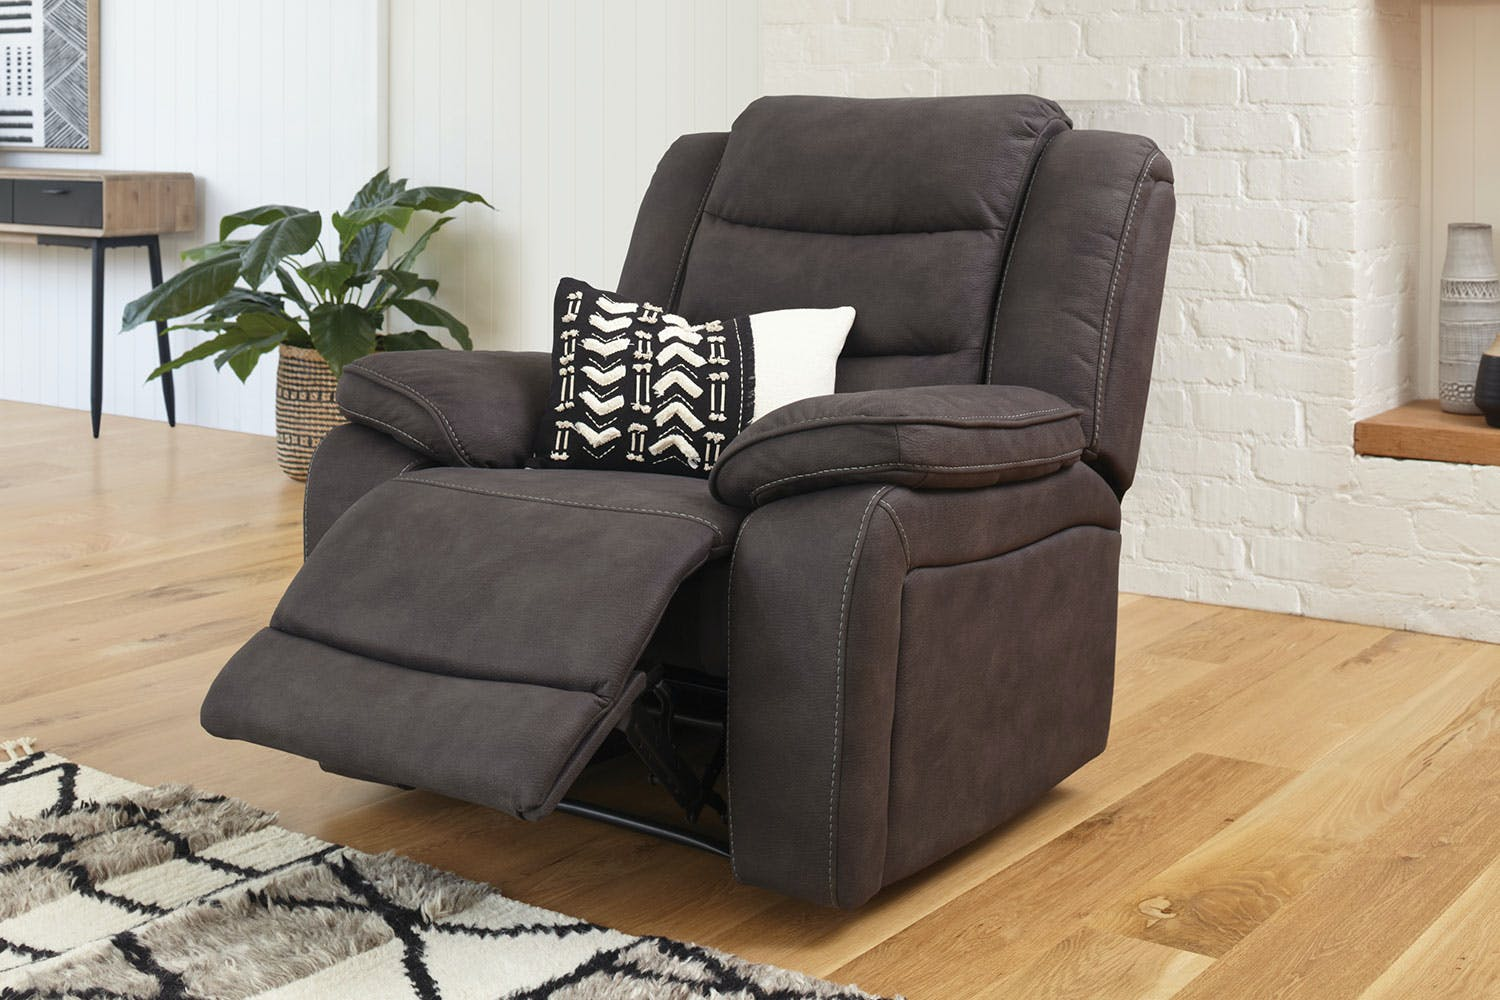 Turner Fabric Recliner Chair